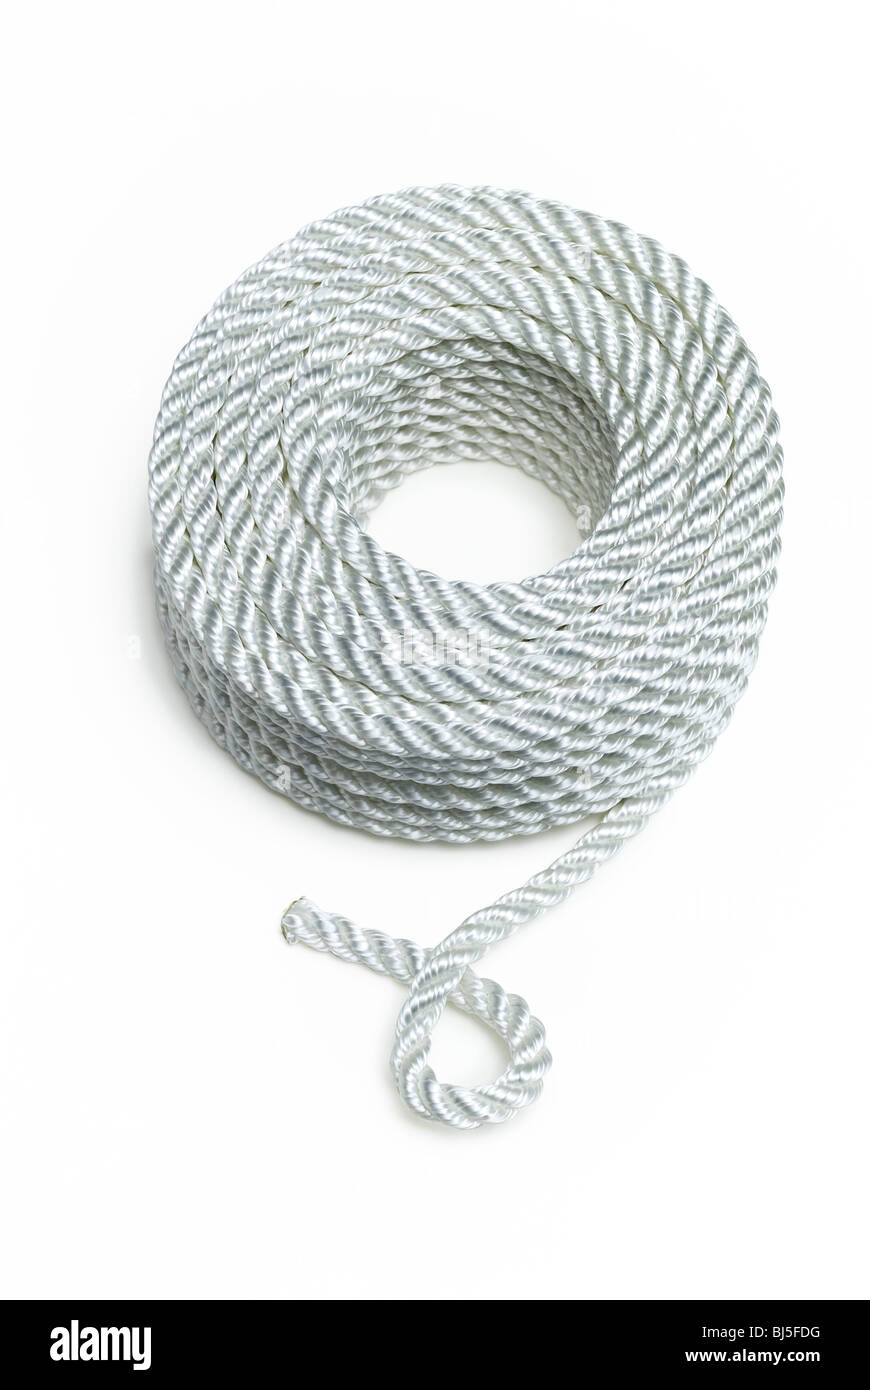 coiled white nylon rope - Stock Image